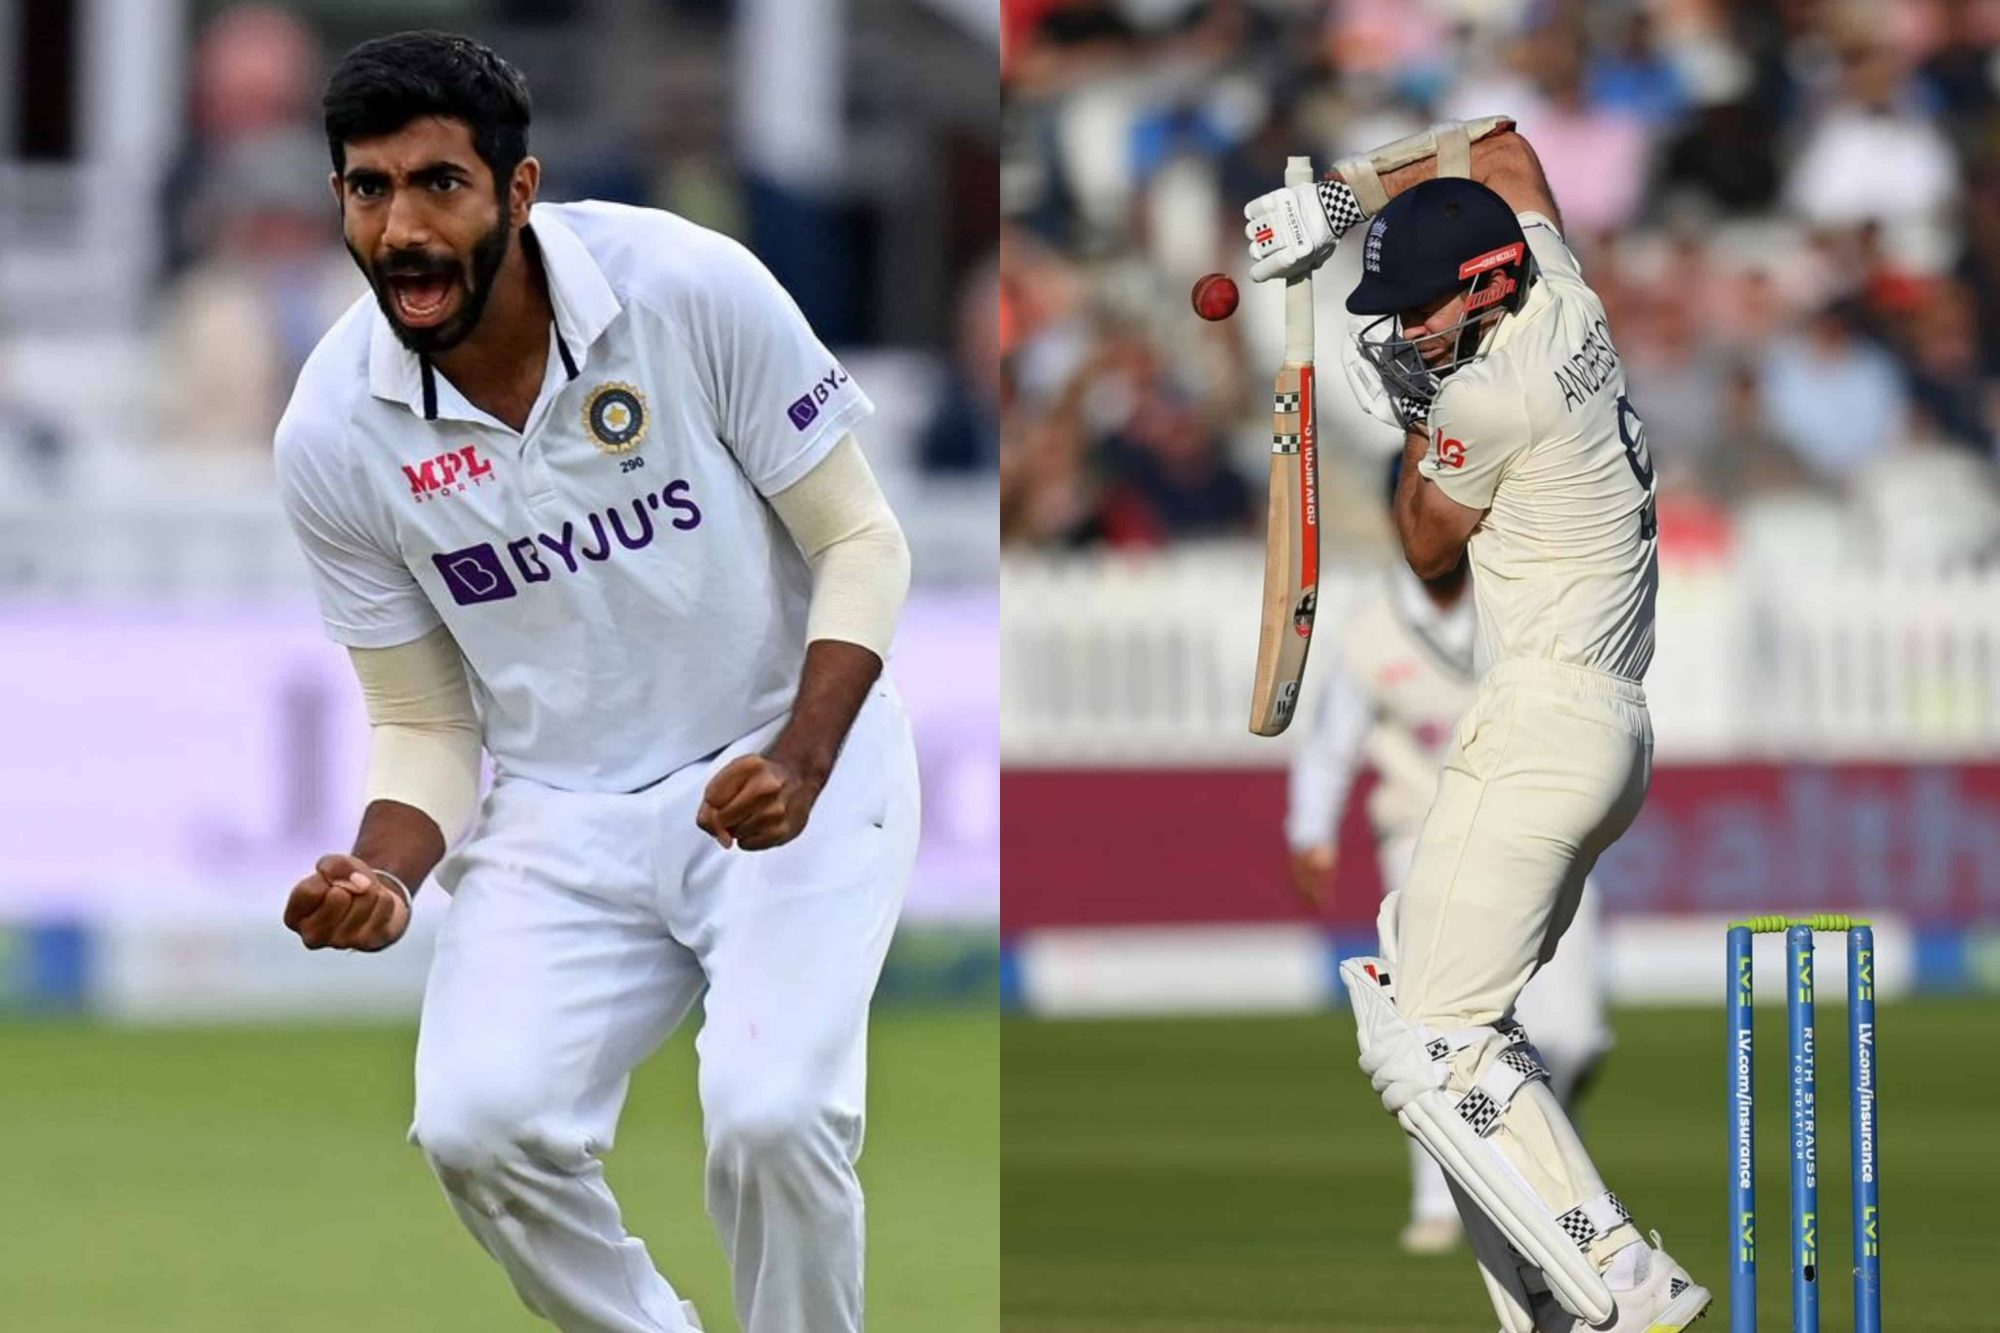 Haven't Felt This Ever In My Career; He Wasn't Trying To Get Me Out: James Anderson On Jasprit Bumrah